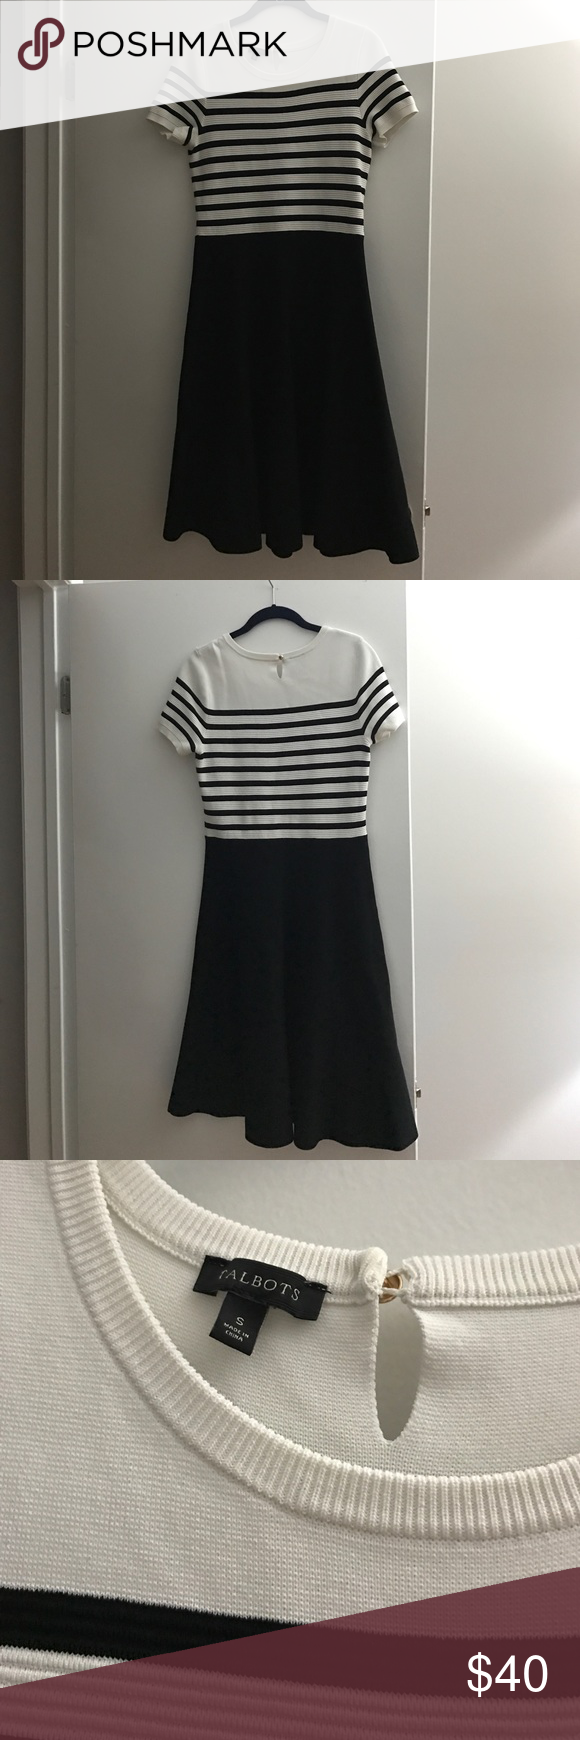 Talbots midi sweater dress Worn 2 times. In perfect condition. Black and white stripe sweater dress from talbots. Pull on style with one button closure. Midi length. Hits below knee. Size small Talbots Dresses Midi